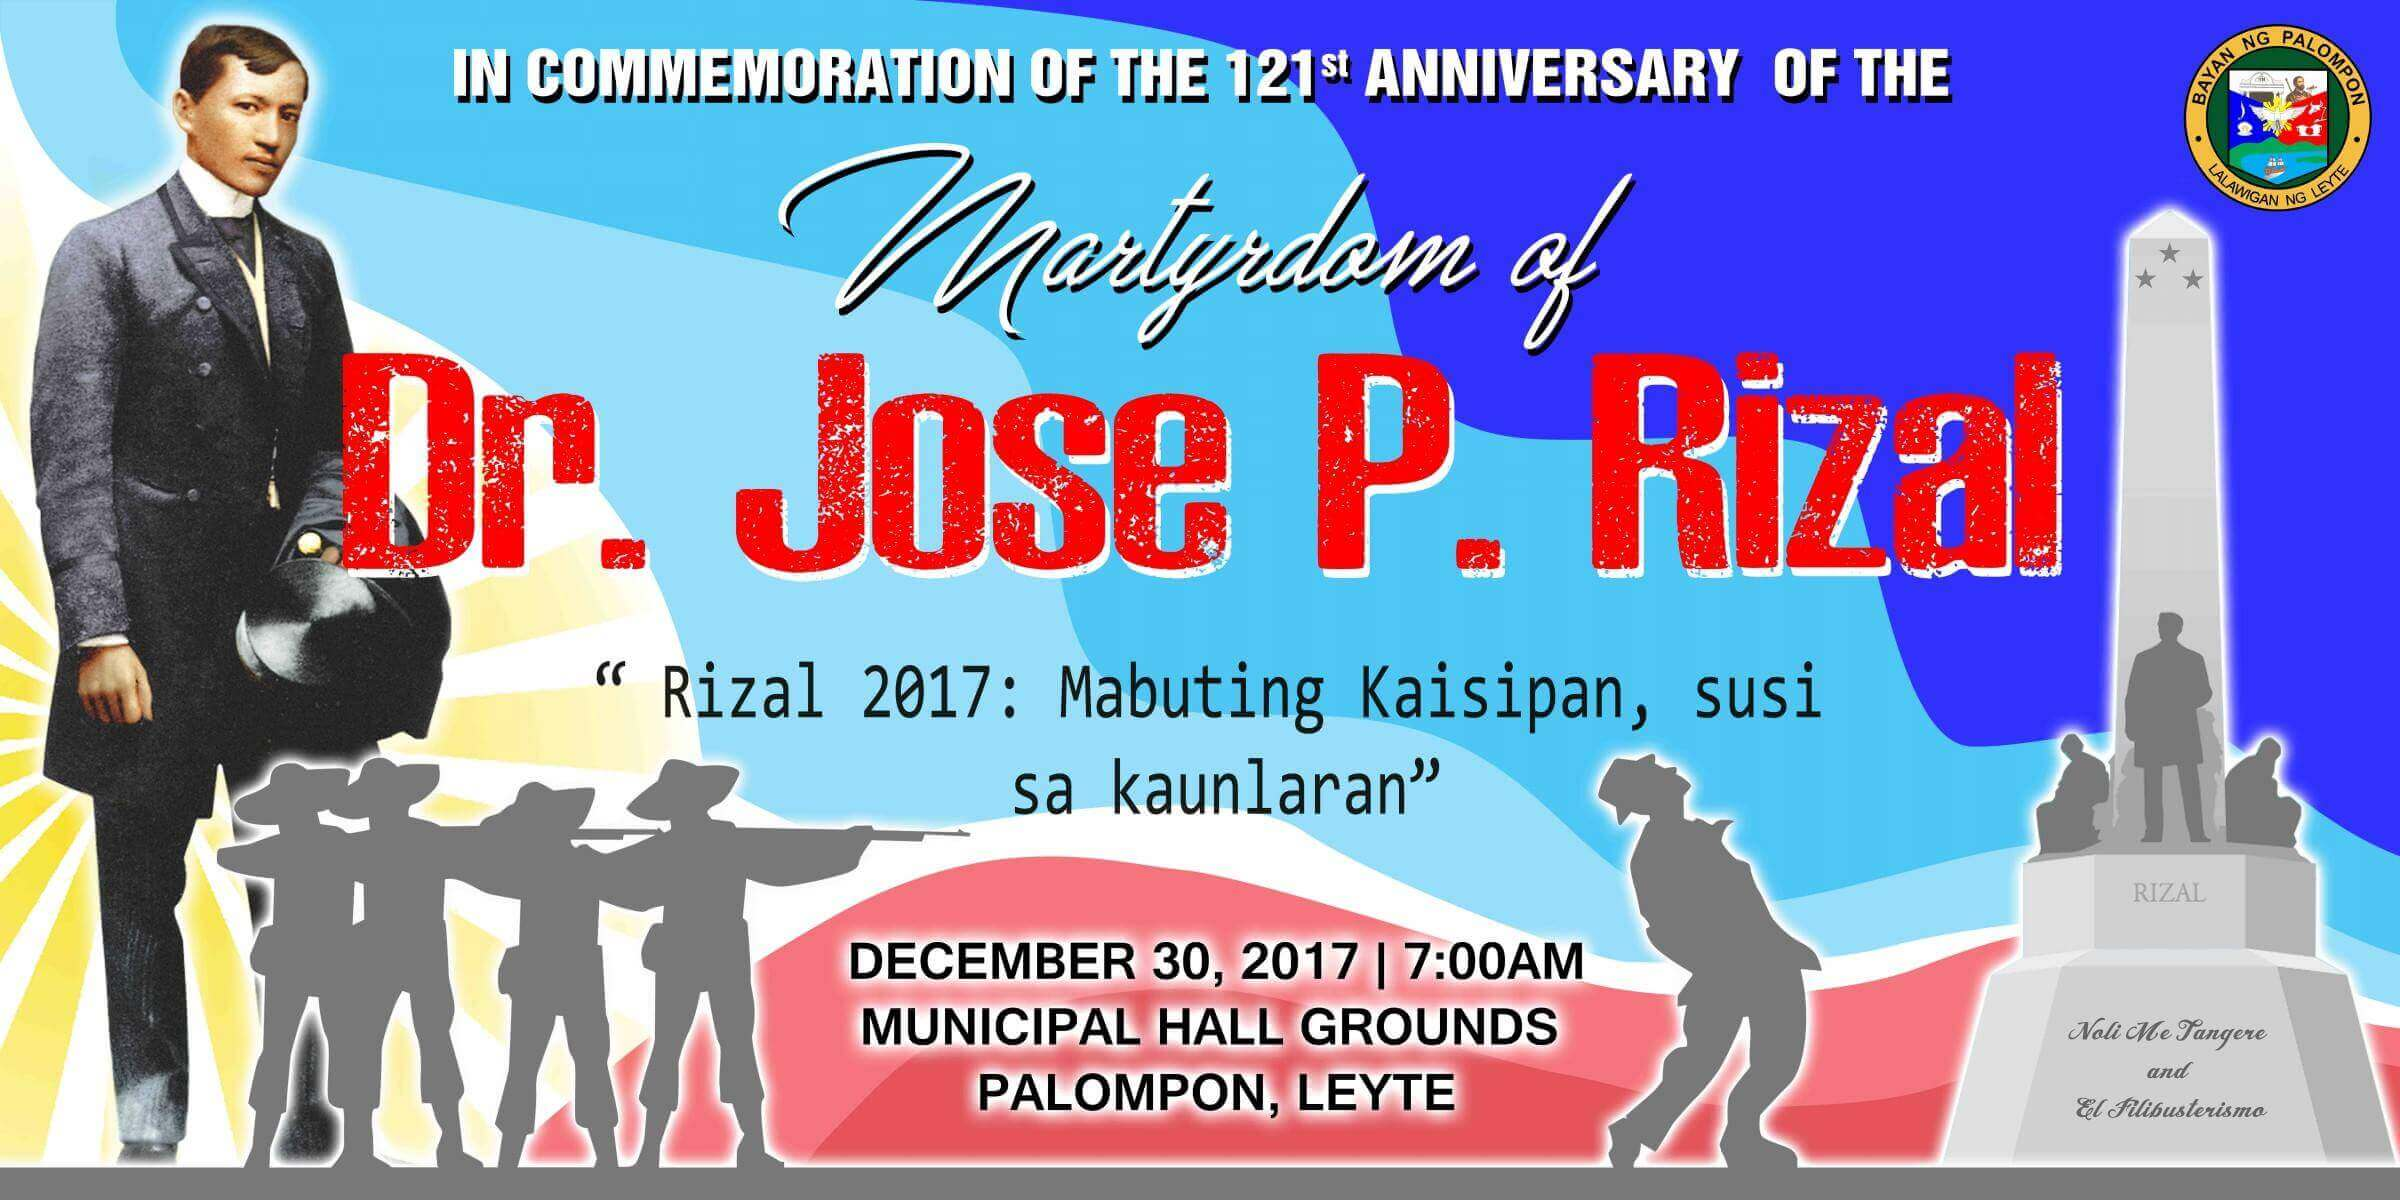 121st Anniversary of the Martyrdom of Dr. Jose P. Rizal